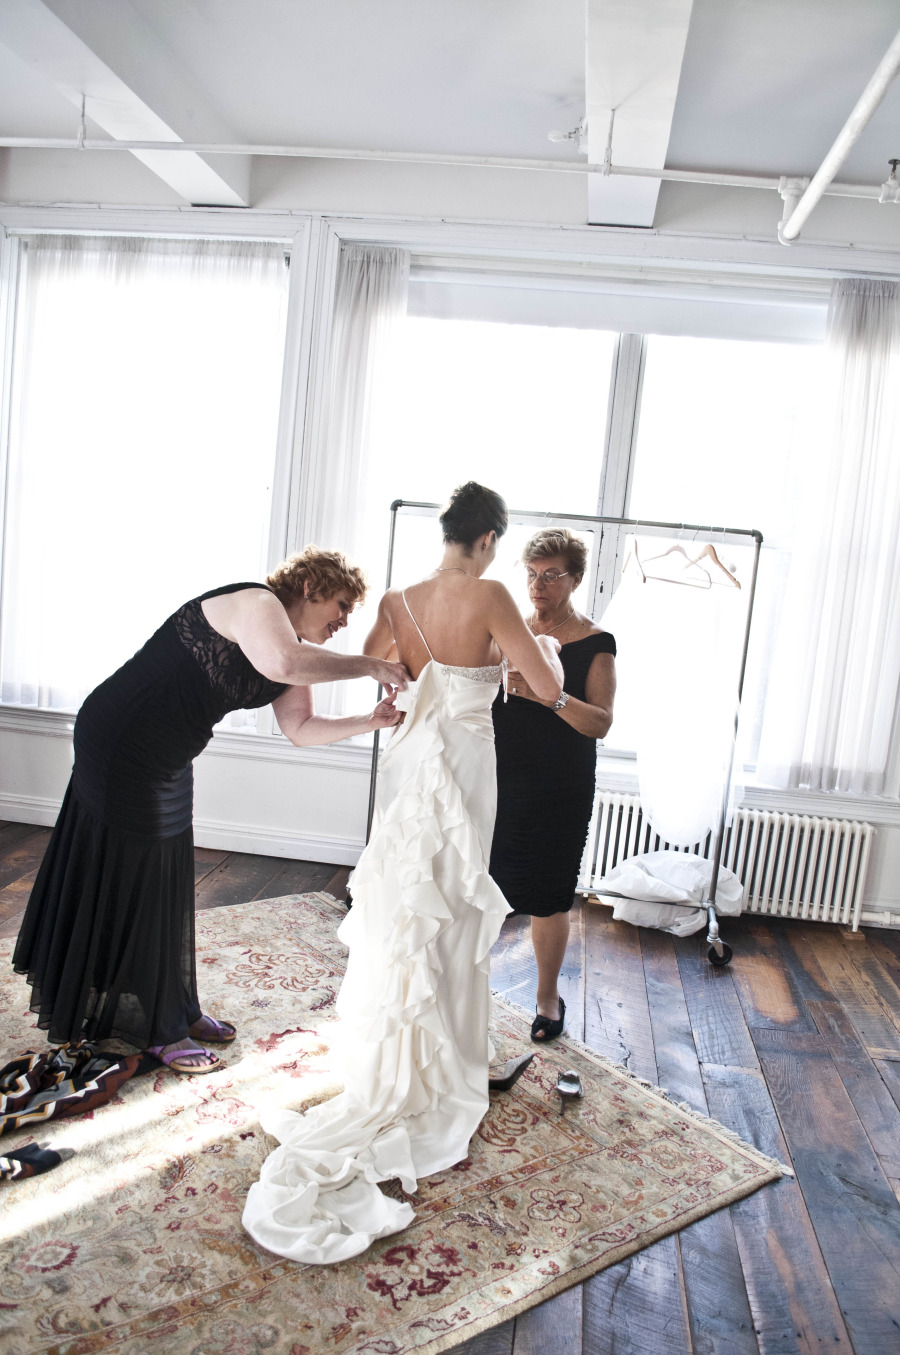 garys-lofts-new-york-wedding-2